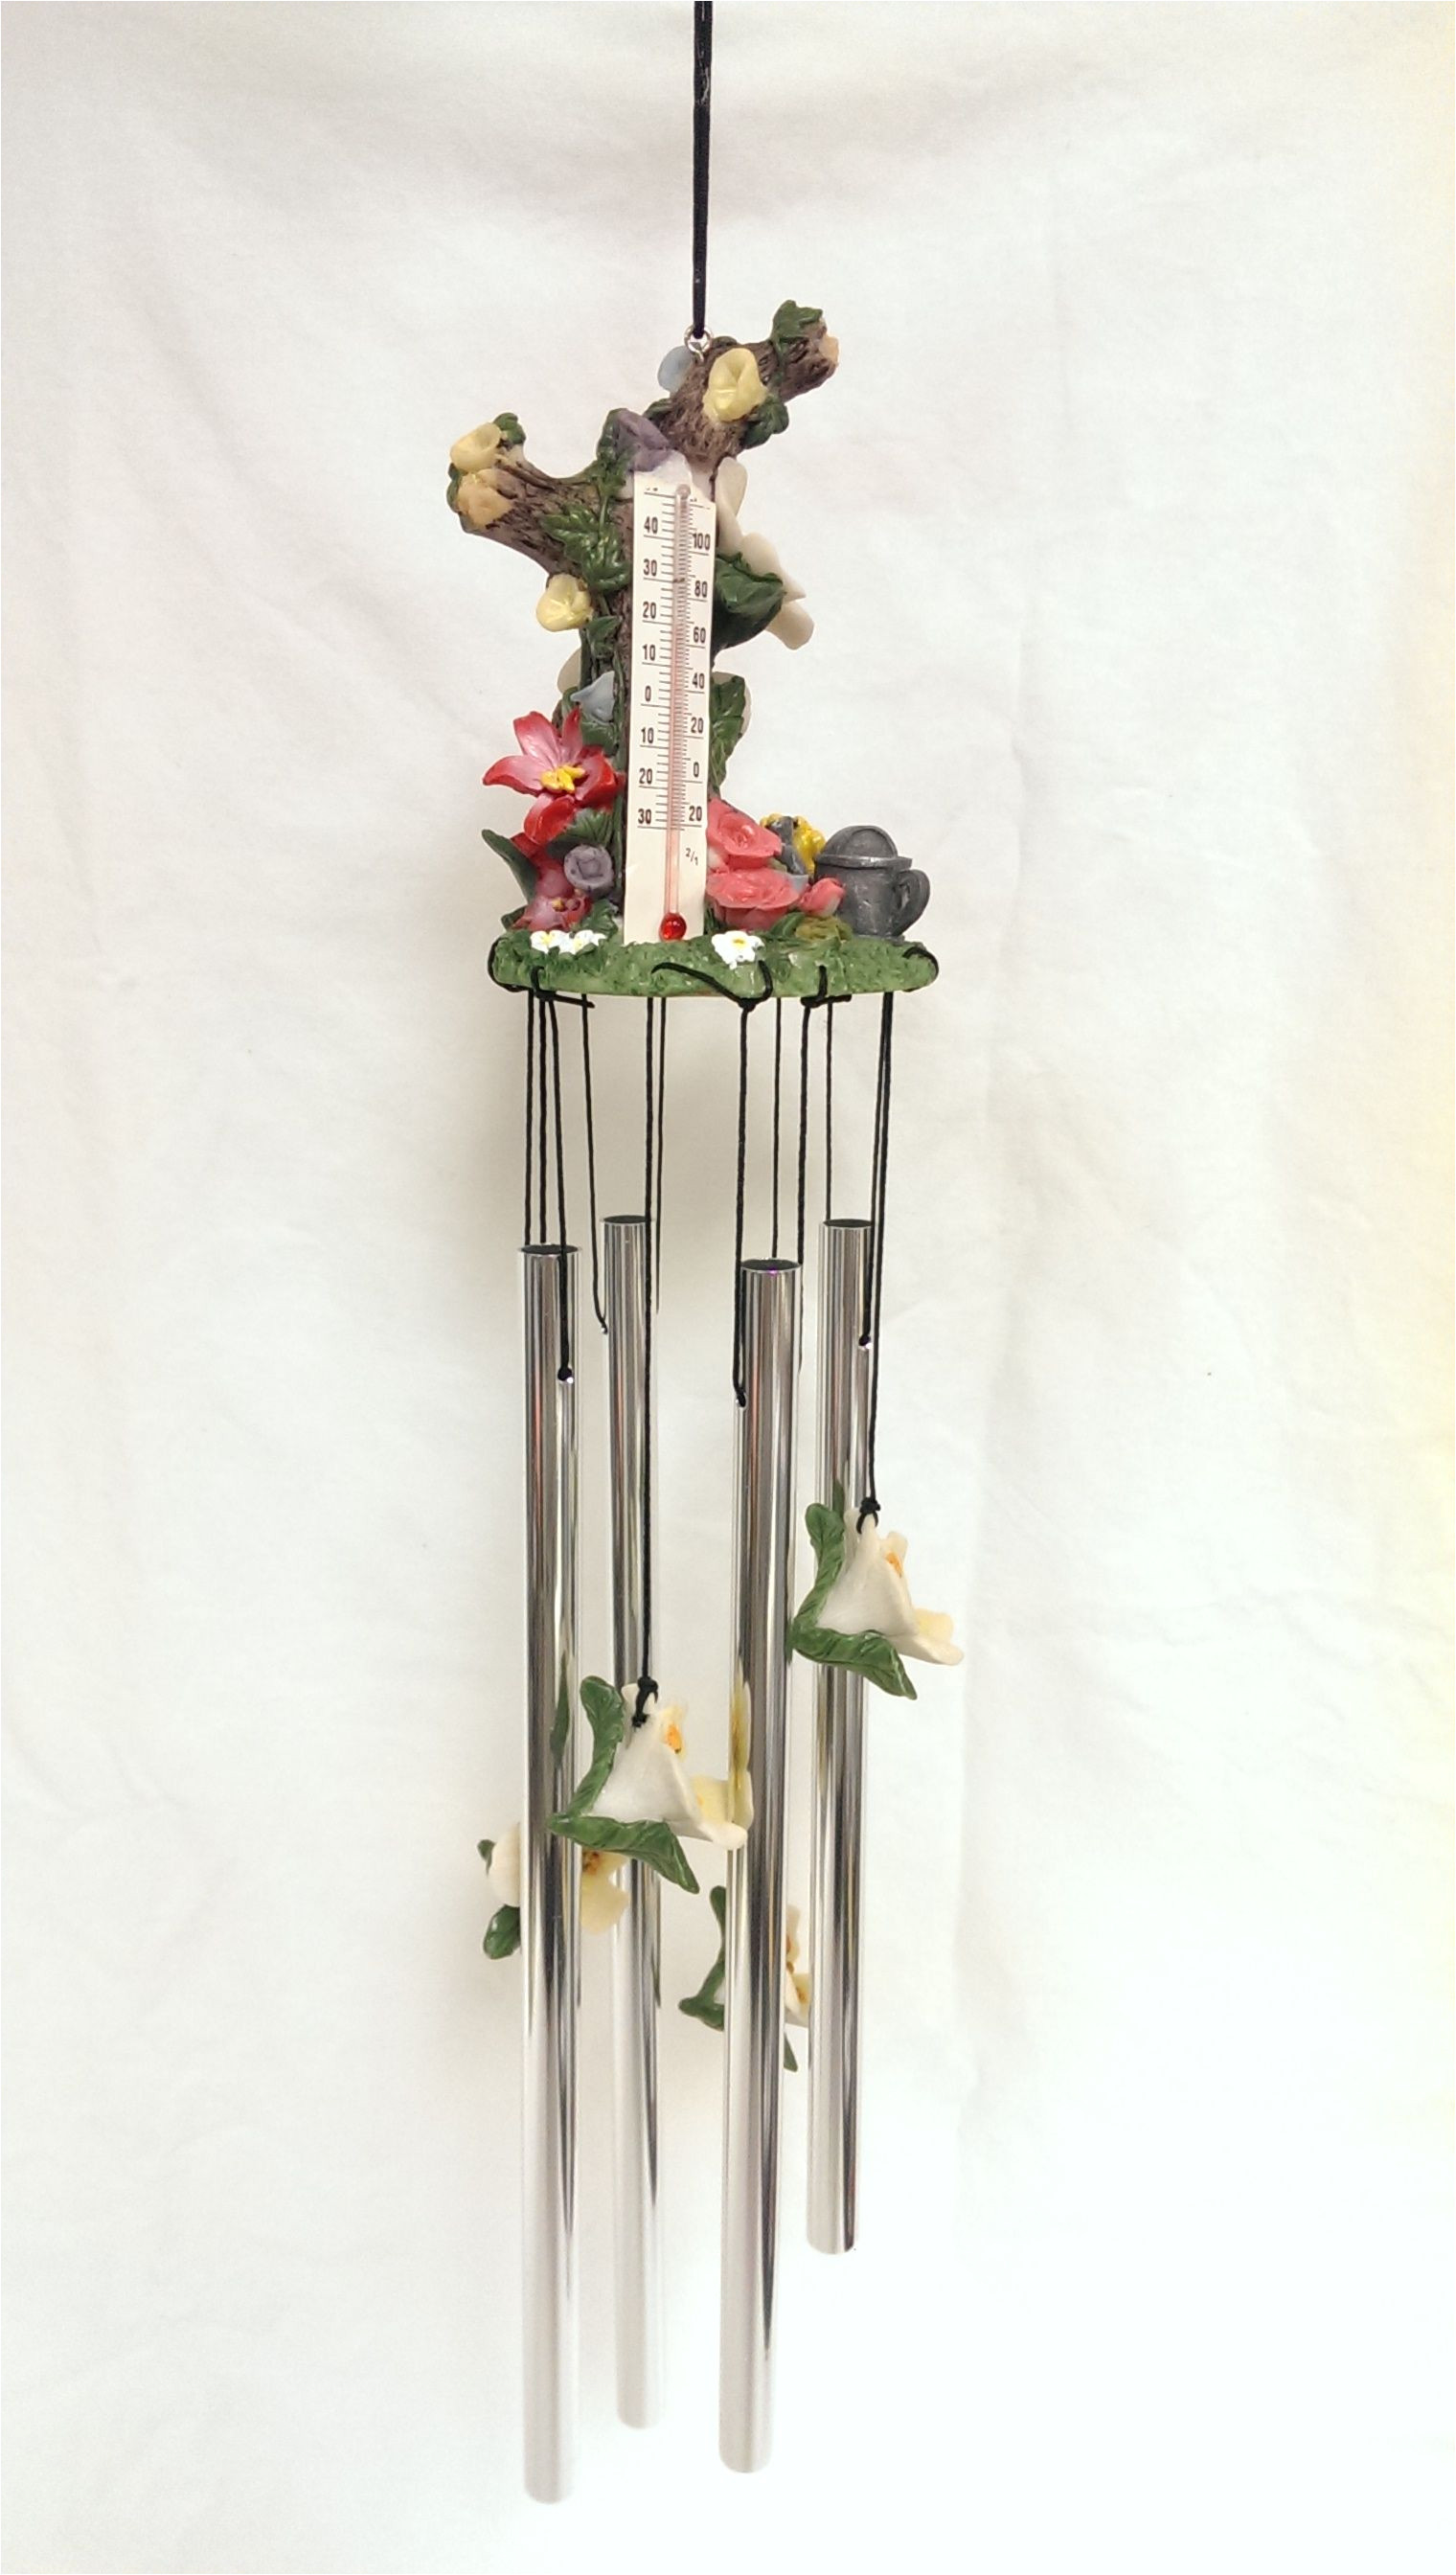 41338 thermometer wind chime